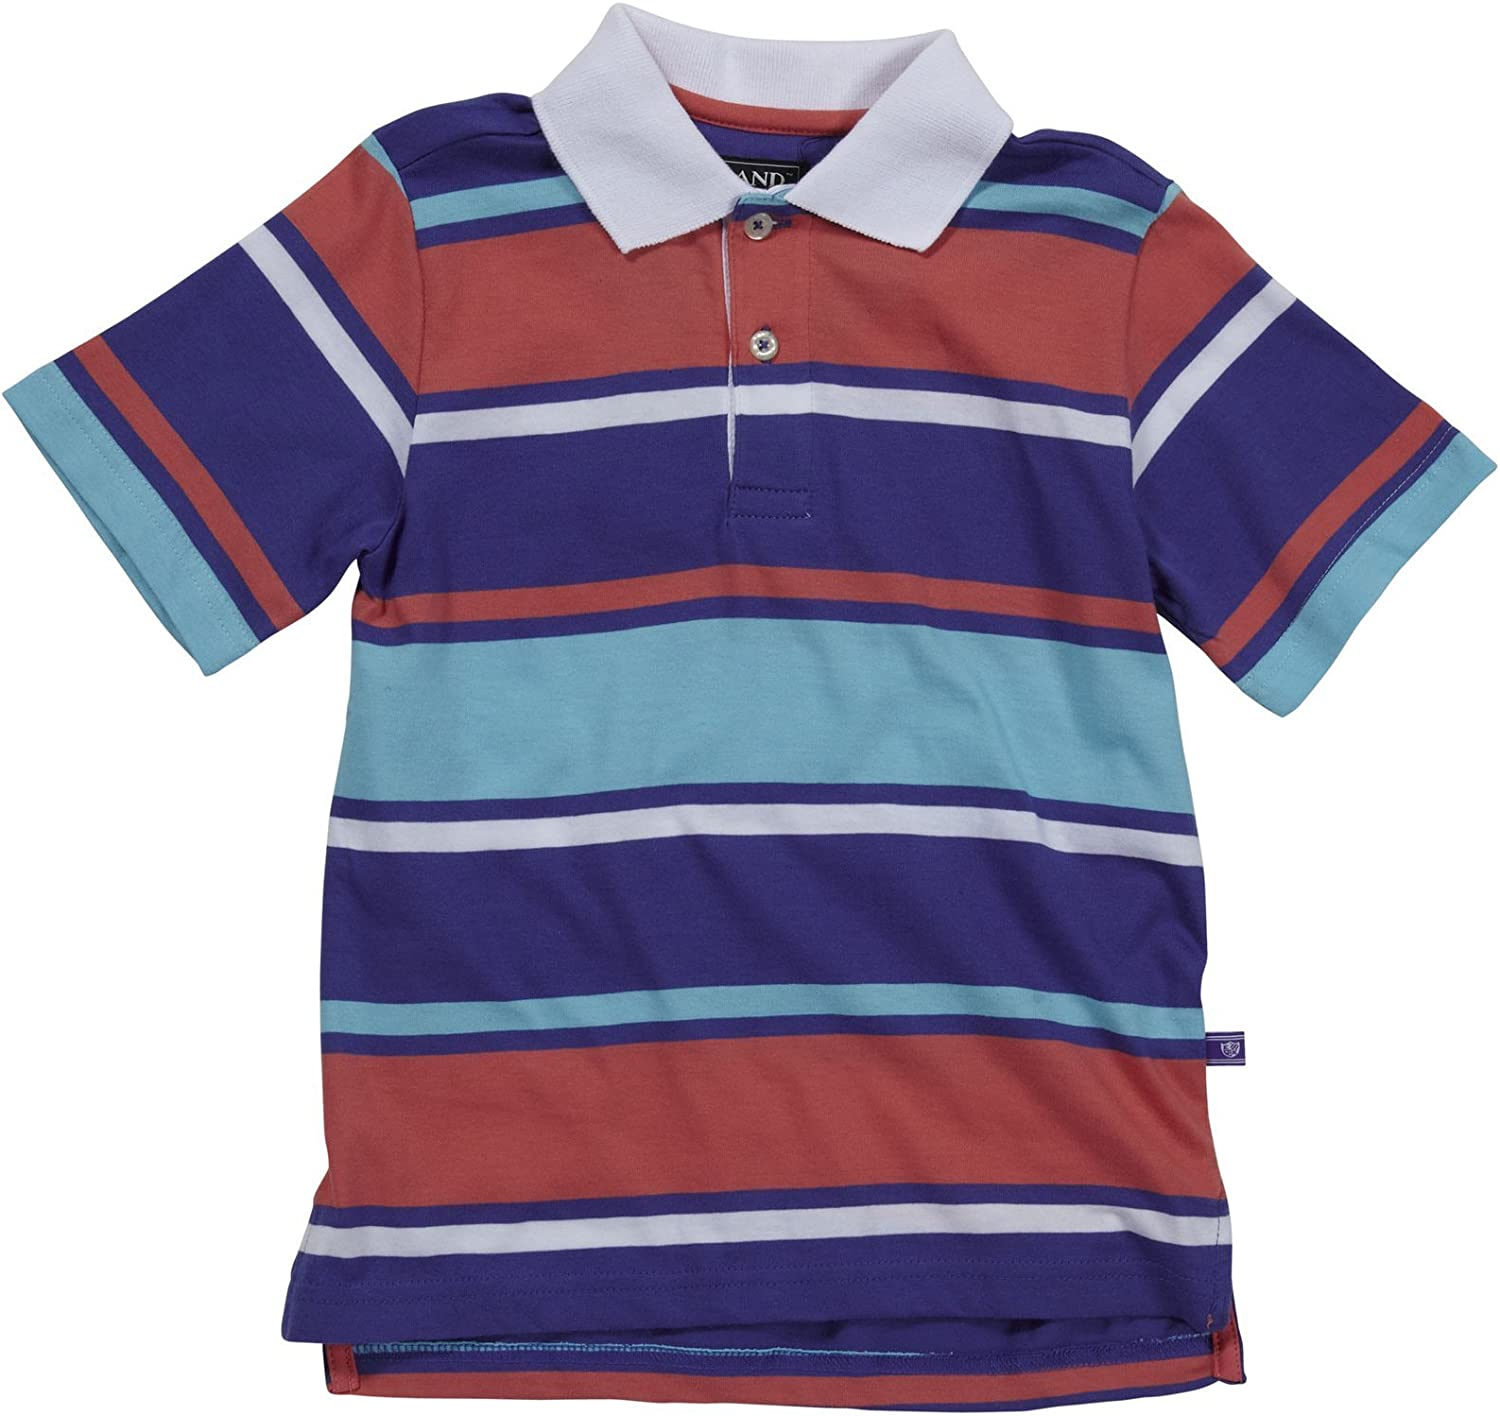 E-land Kids Boys' Rugby Polo (Toddler/Kids) - Heliotrope - 4T